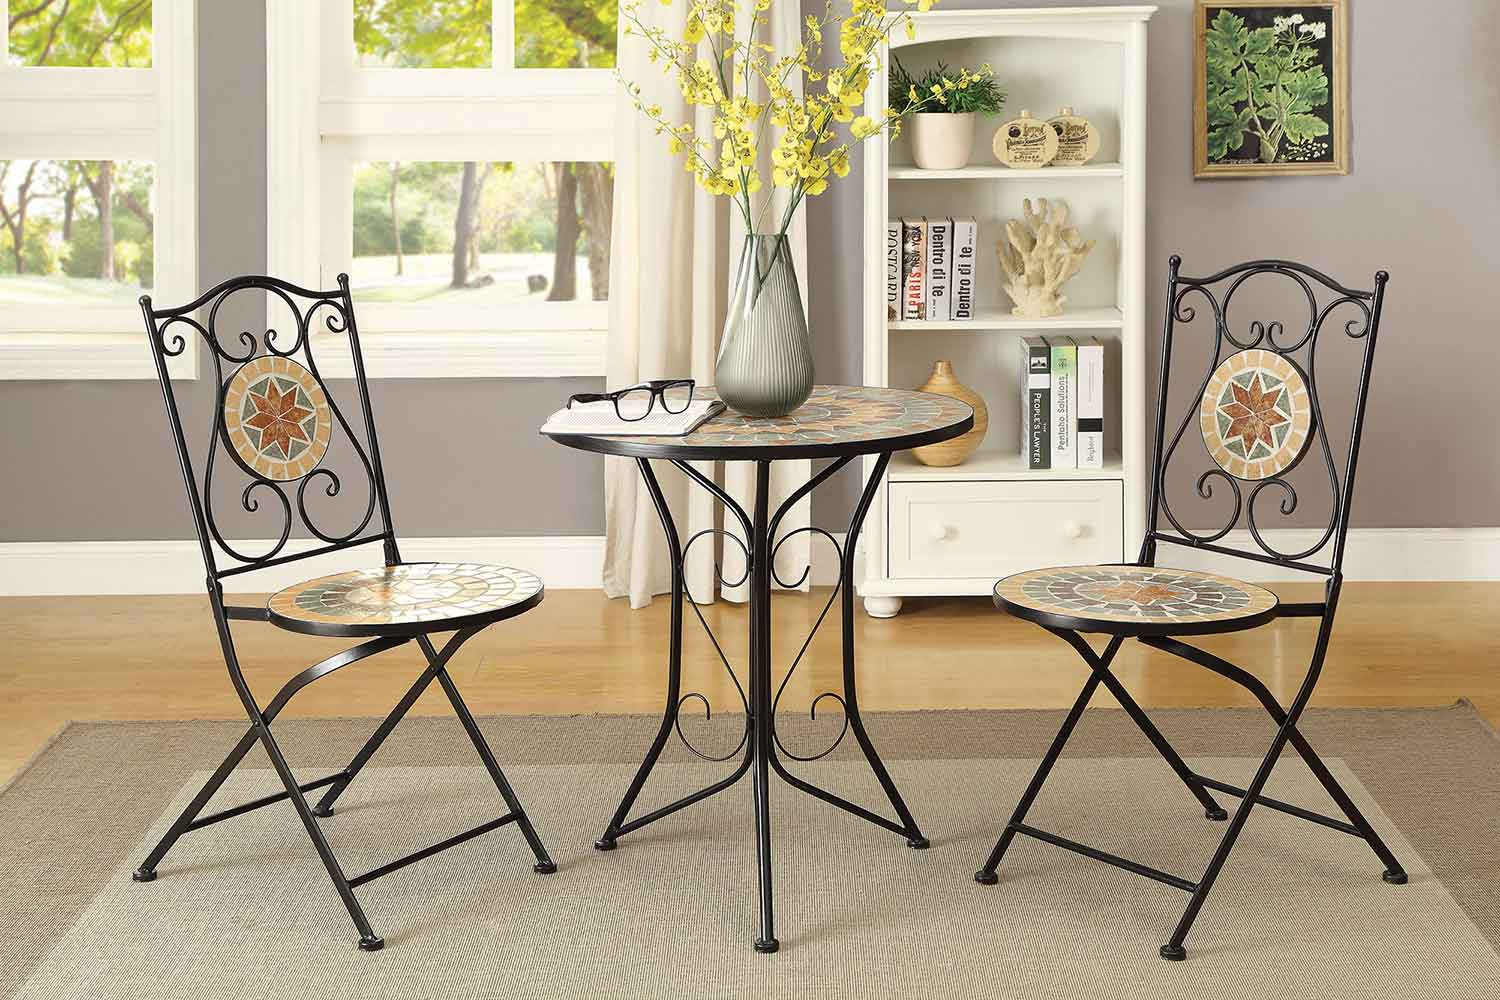 Coaster 104165 3 PC Dining Set with Mosaic Tiles - Multi-Bright